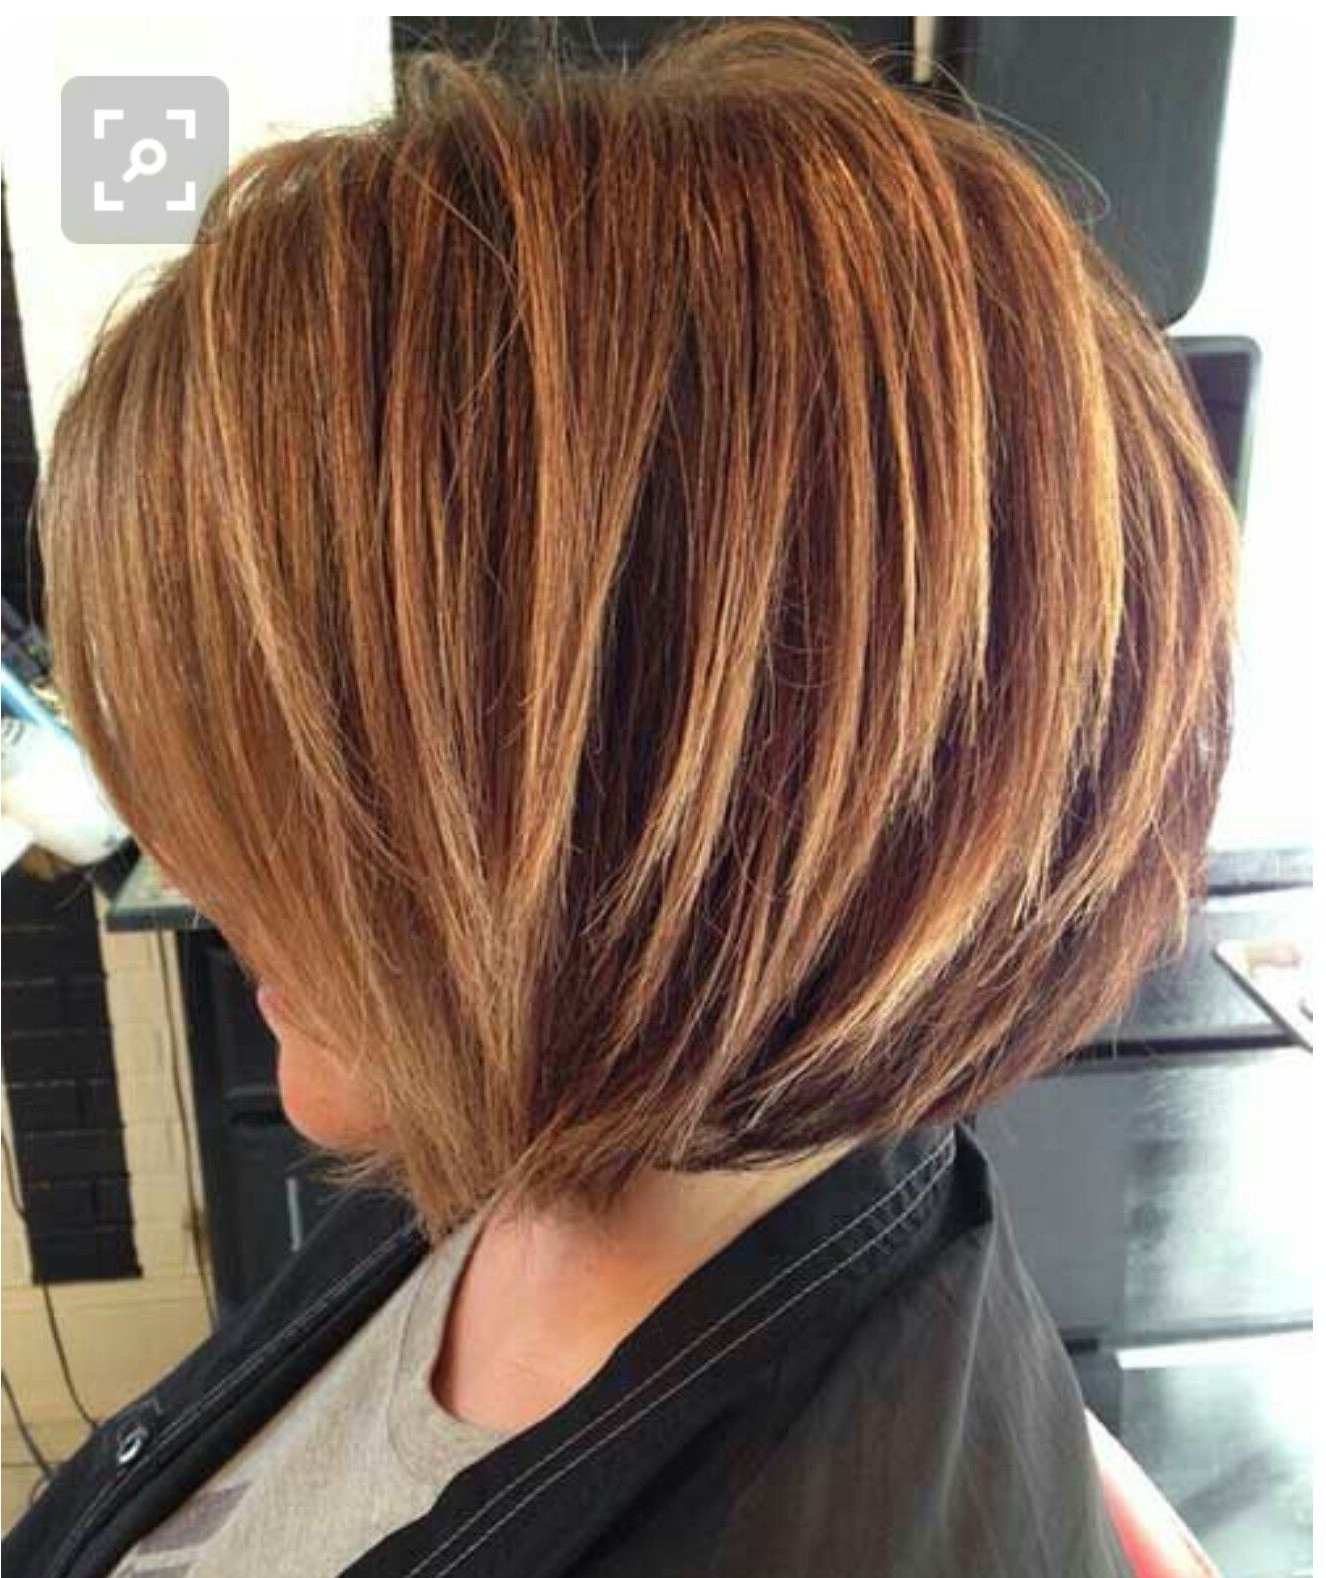 New Stacked A Line Bob Hairstyle Pictures Regarding Stacked Bob Hairstyles With Highlights (View 8 of 20)